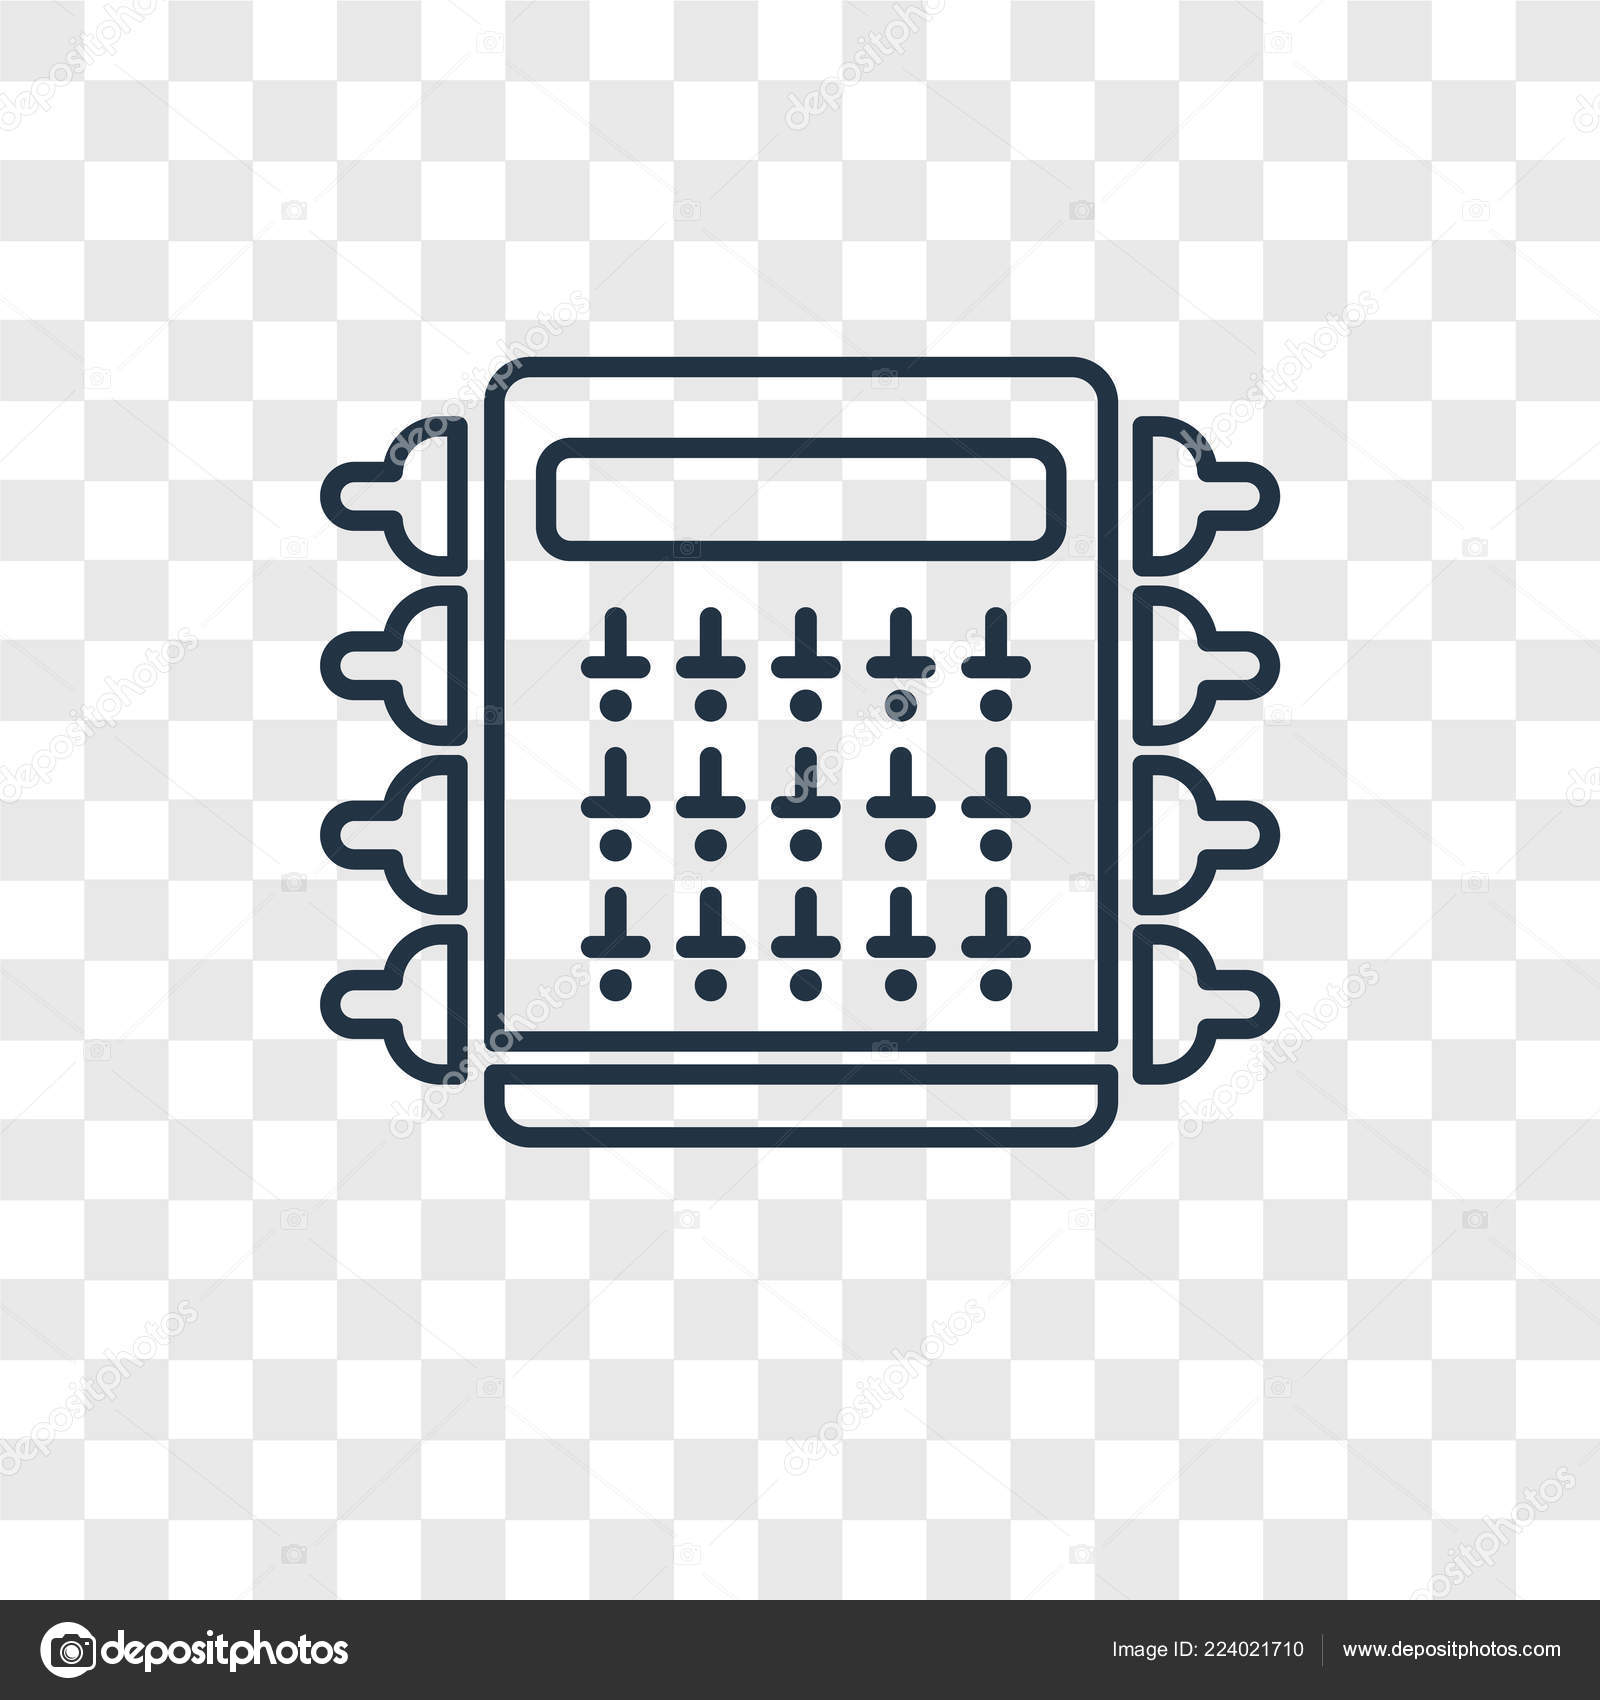 hight resolution of fuse box icon in trendy design style fuse box icon isolated on transparent background fuse box vector icon simple and modern flat symbol for web site